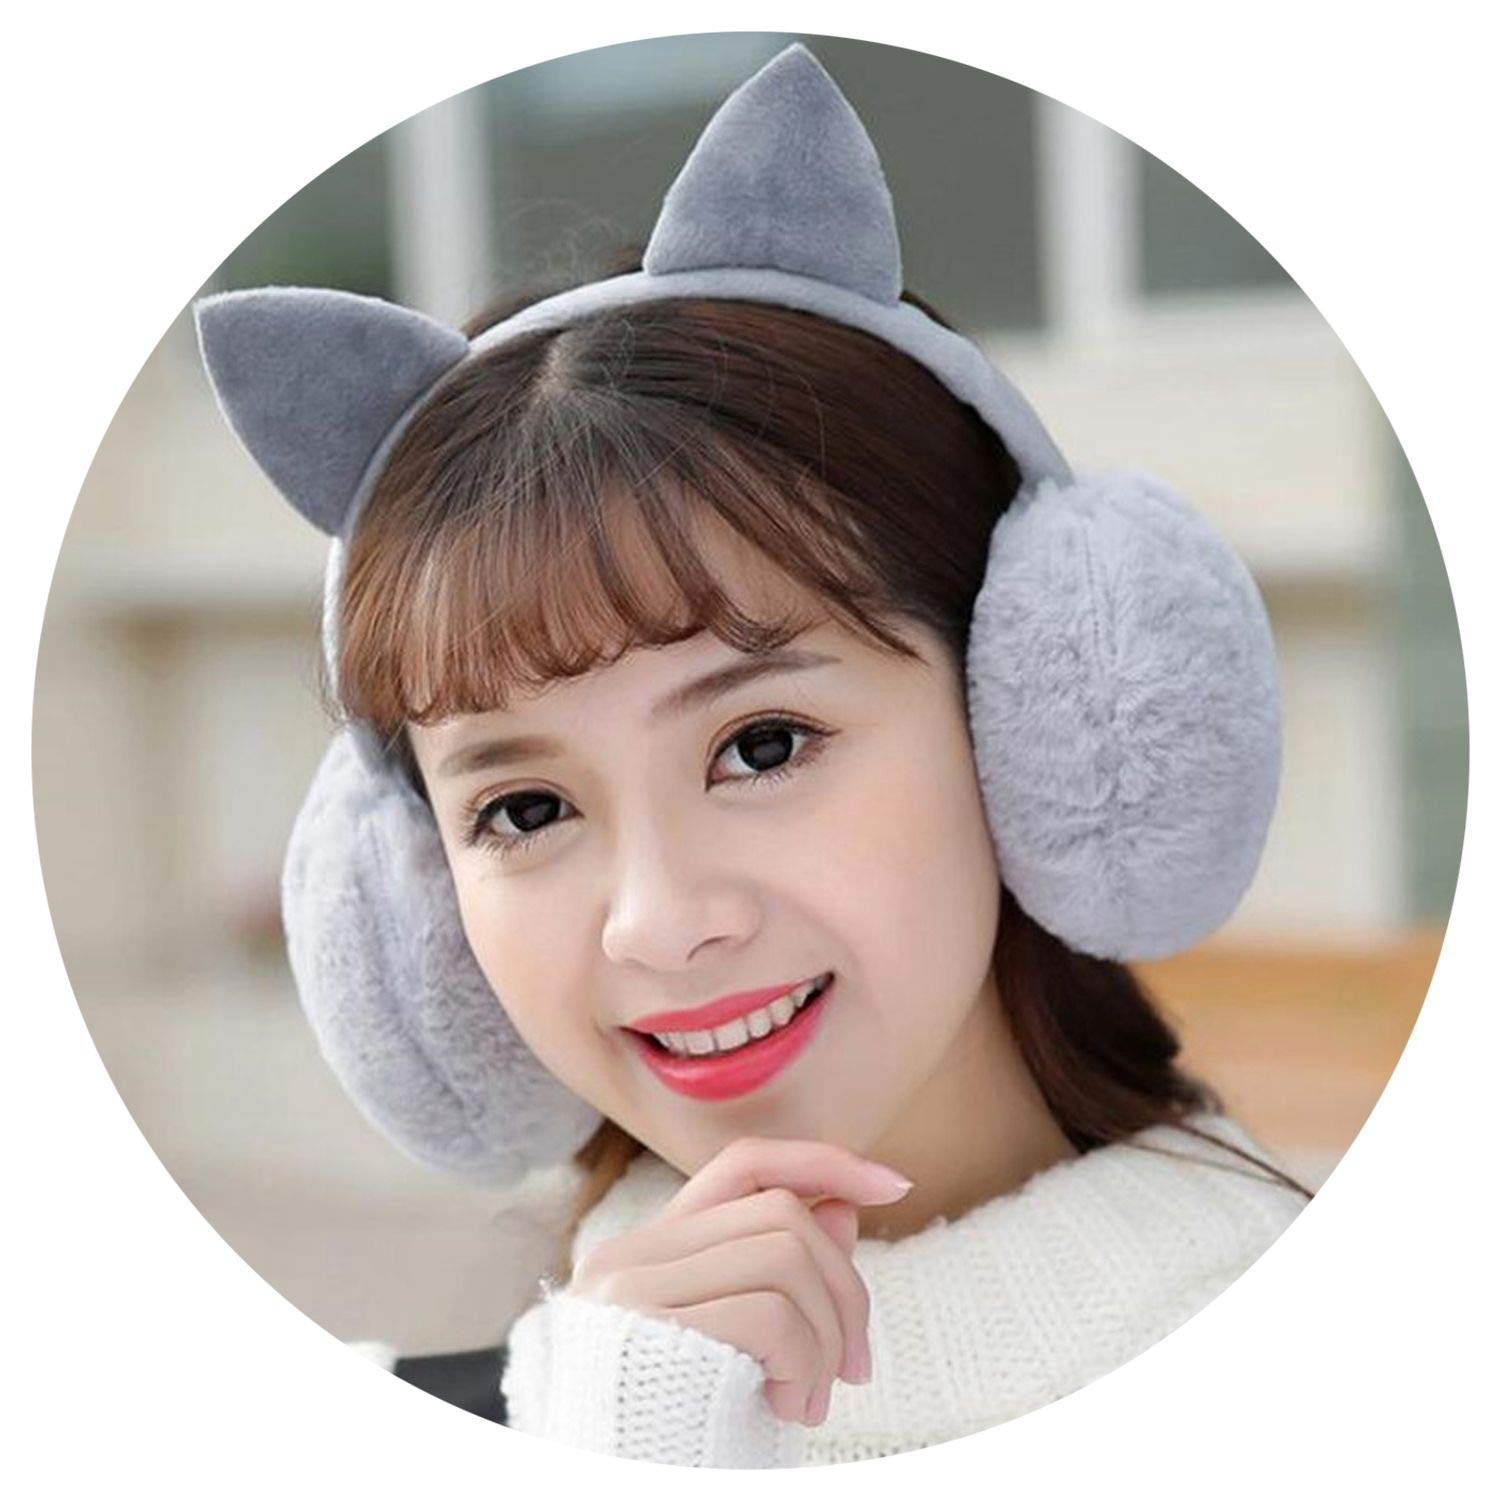 muffs Ultralarge Imitation t Earflap ies Plush Ear Muff Earlap